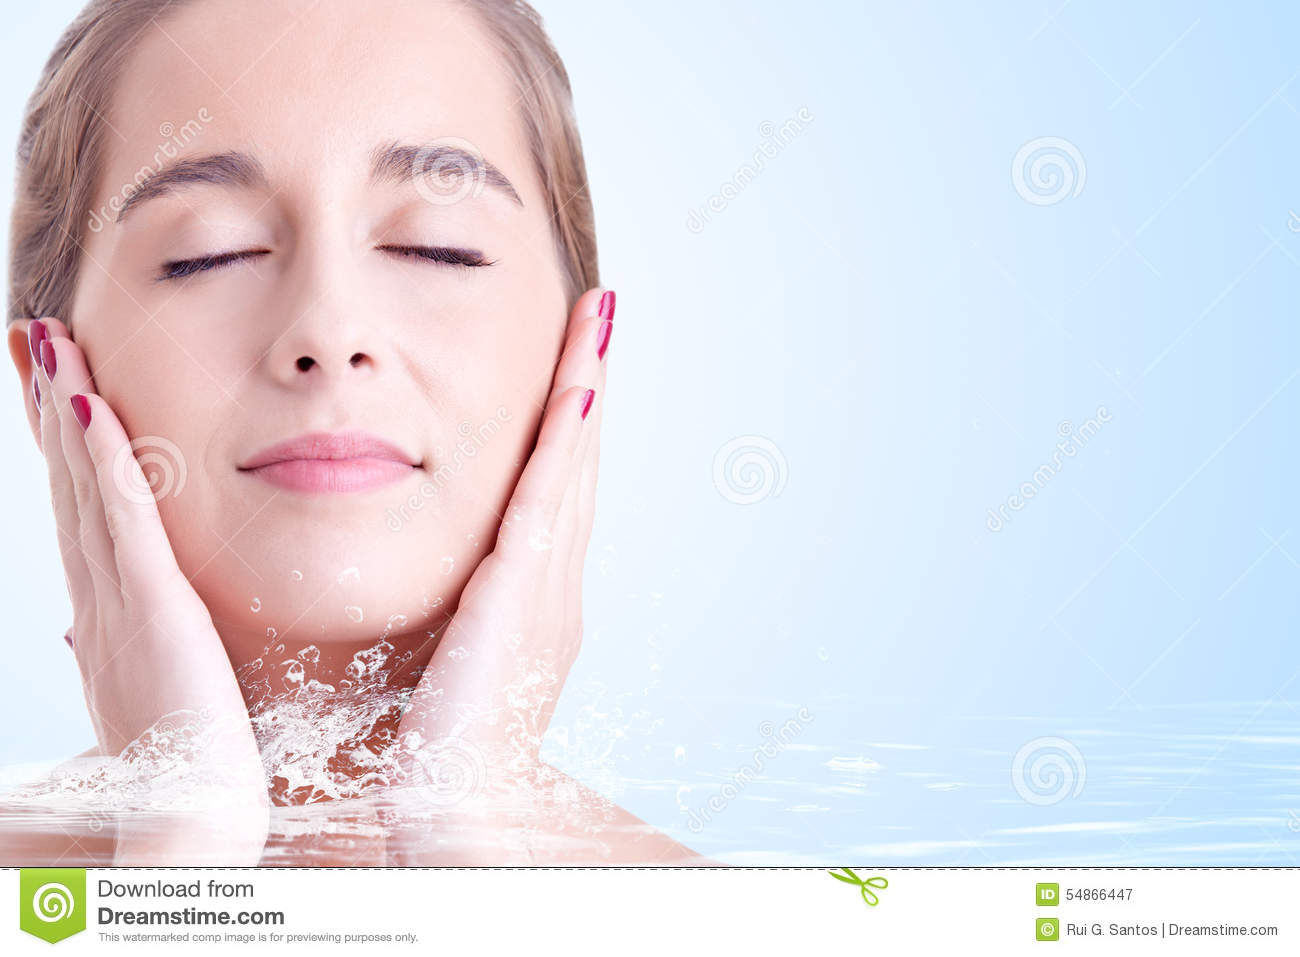 skin-care-portrait-young-woman-isolated-white-background-54866447.jpg